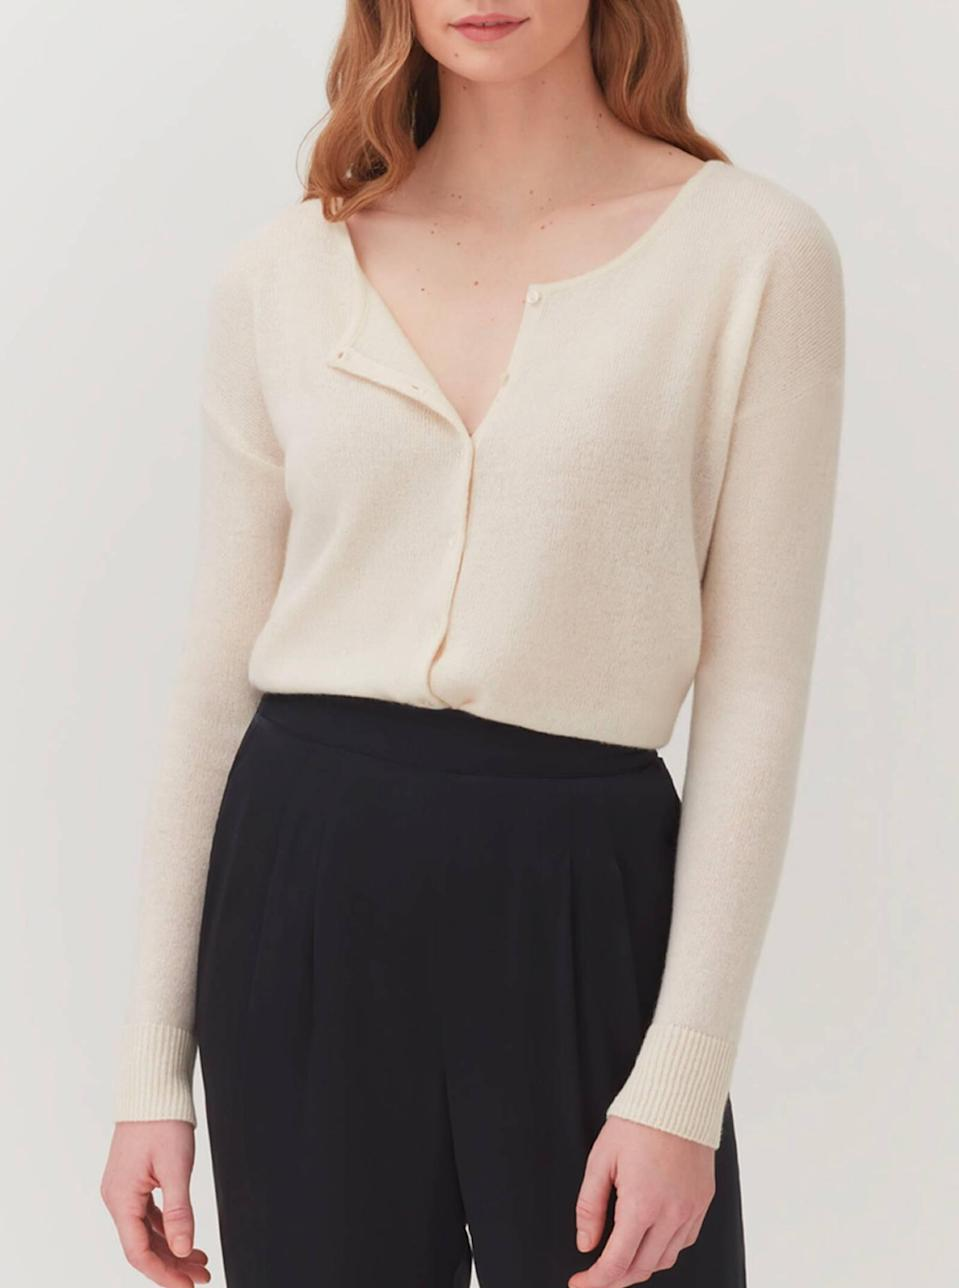 """$195, Cuyana. <a href=""""https://www.cuyana.com/clothing/sweaters-and-capes/single-origin-cashmere-cardigan/20032019.html"""" rel=""""nofollow noopener"""" target=""""_blank"""" data-ylk=""""slk:Get it now!"""" class=""""link rapid-noclick-resp"""">Get it now!</a>"""